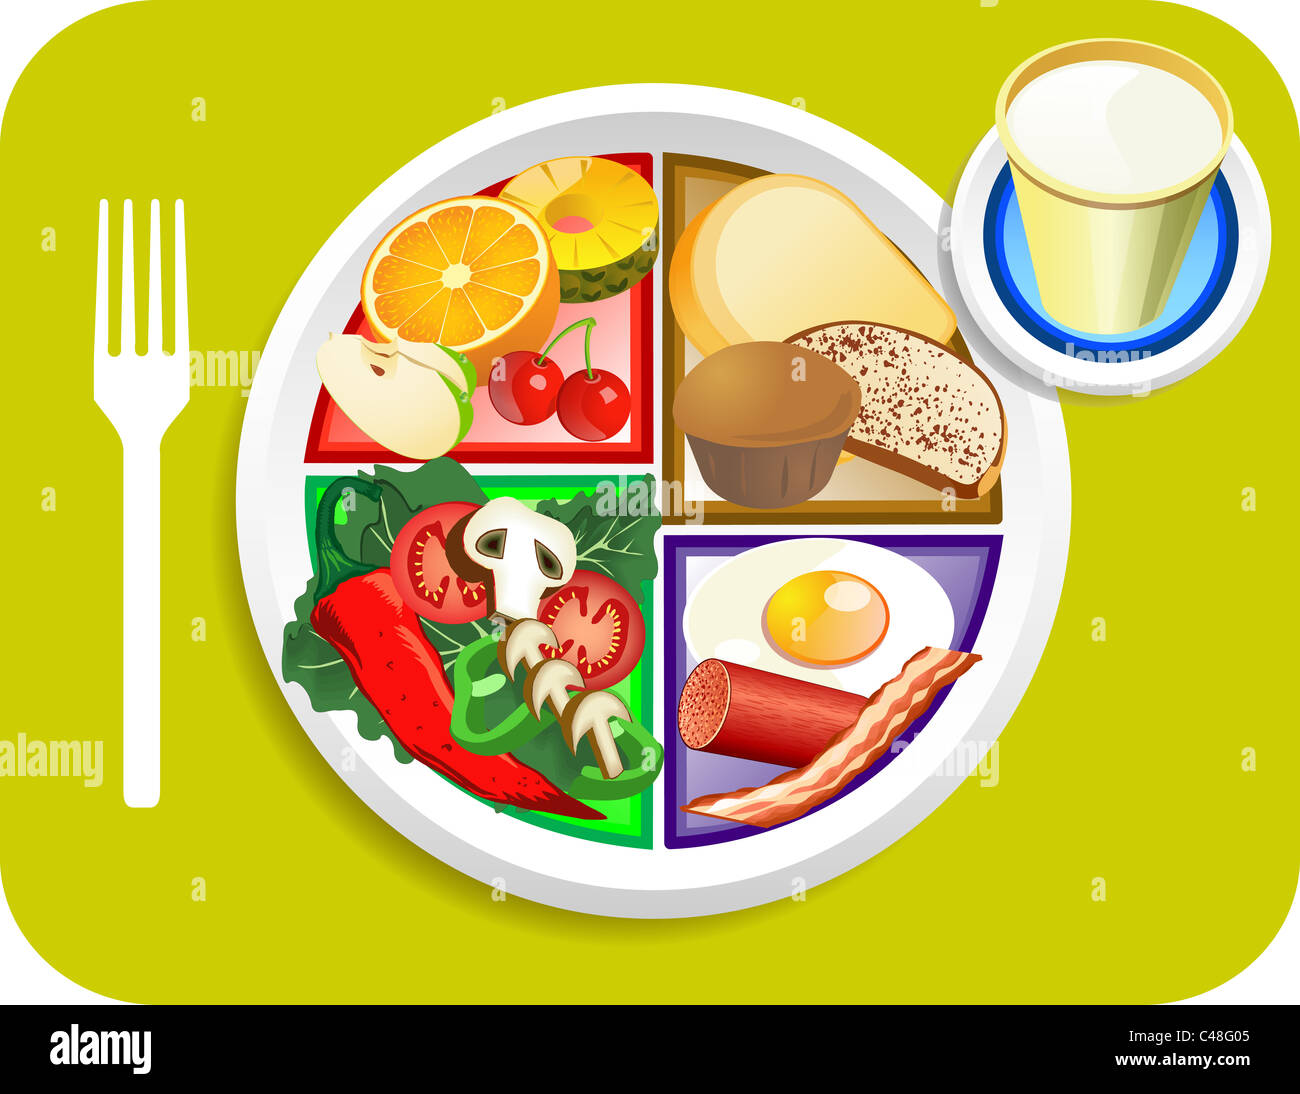 my plate replaces food pyramid  i have some labeled and some for stock photo  royalty free image hot lunch clipart School Lunch Tray Clip Art